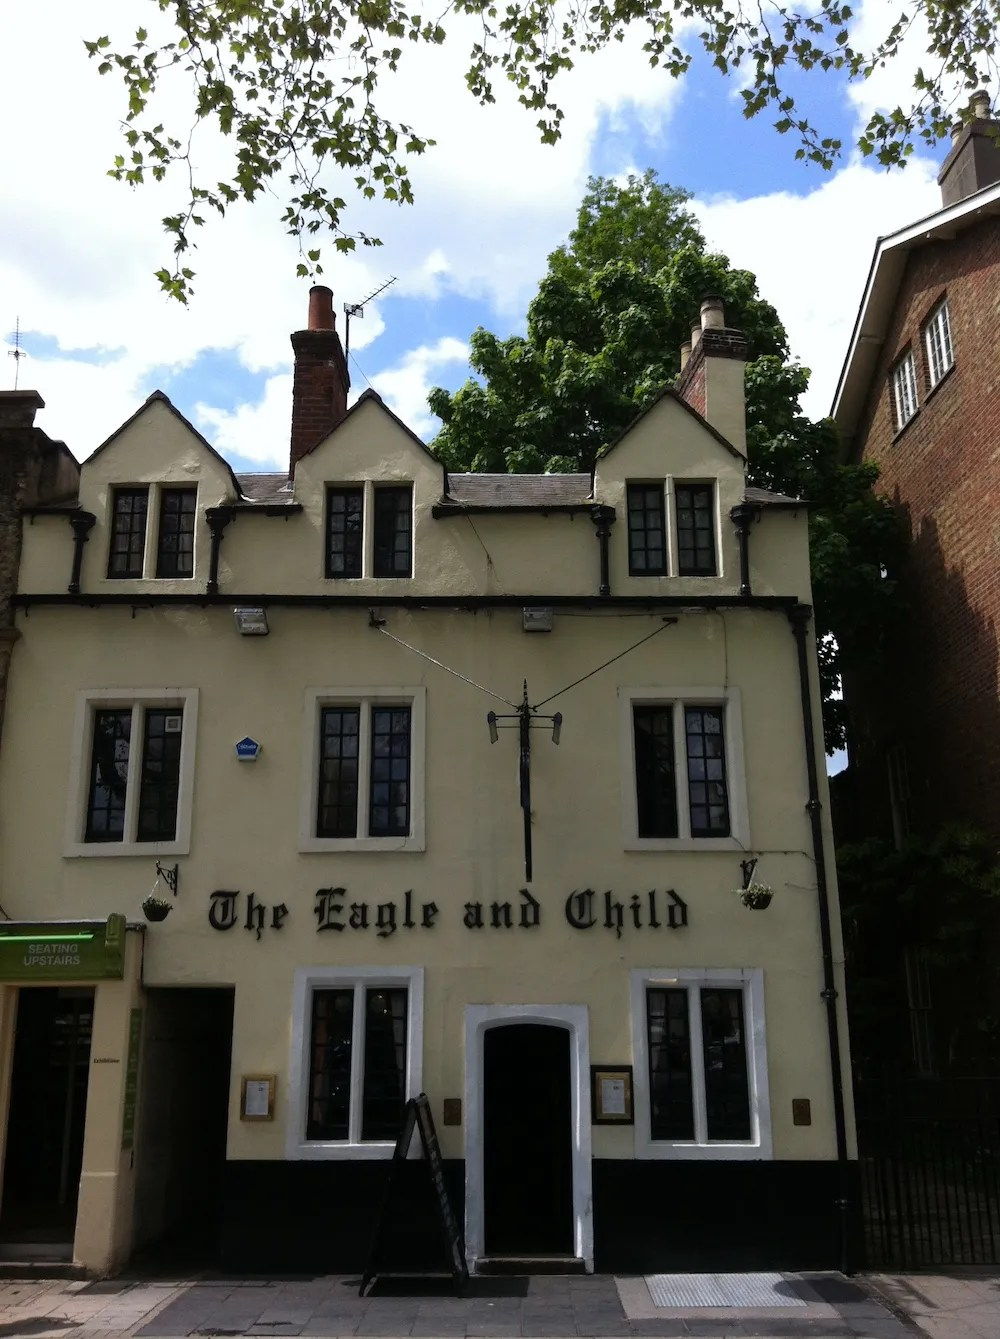 Oxford Day Trip - Exterior of the Eagle & Child Pub